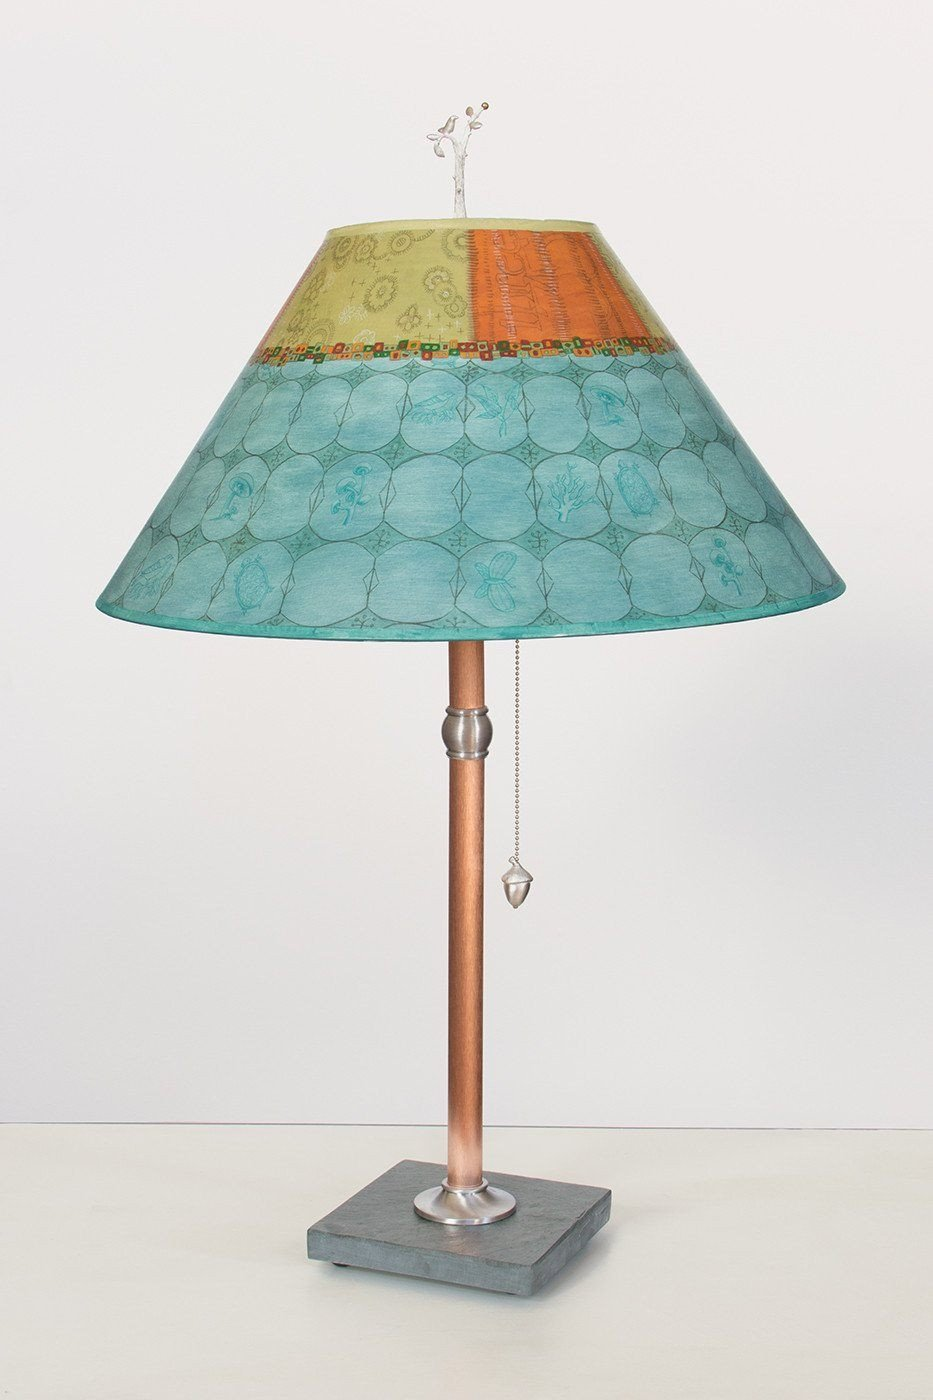 Copper Table Lamp on Vermont Slate with Large Conical Shade in Paradise Pool